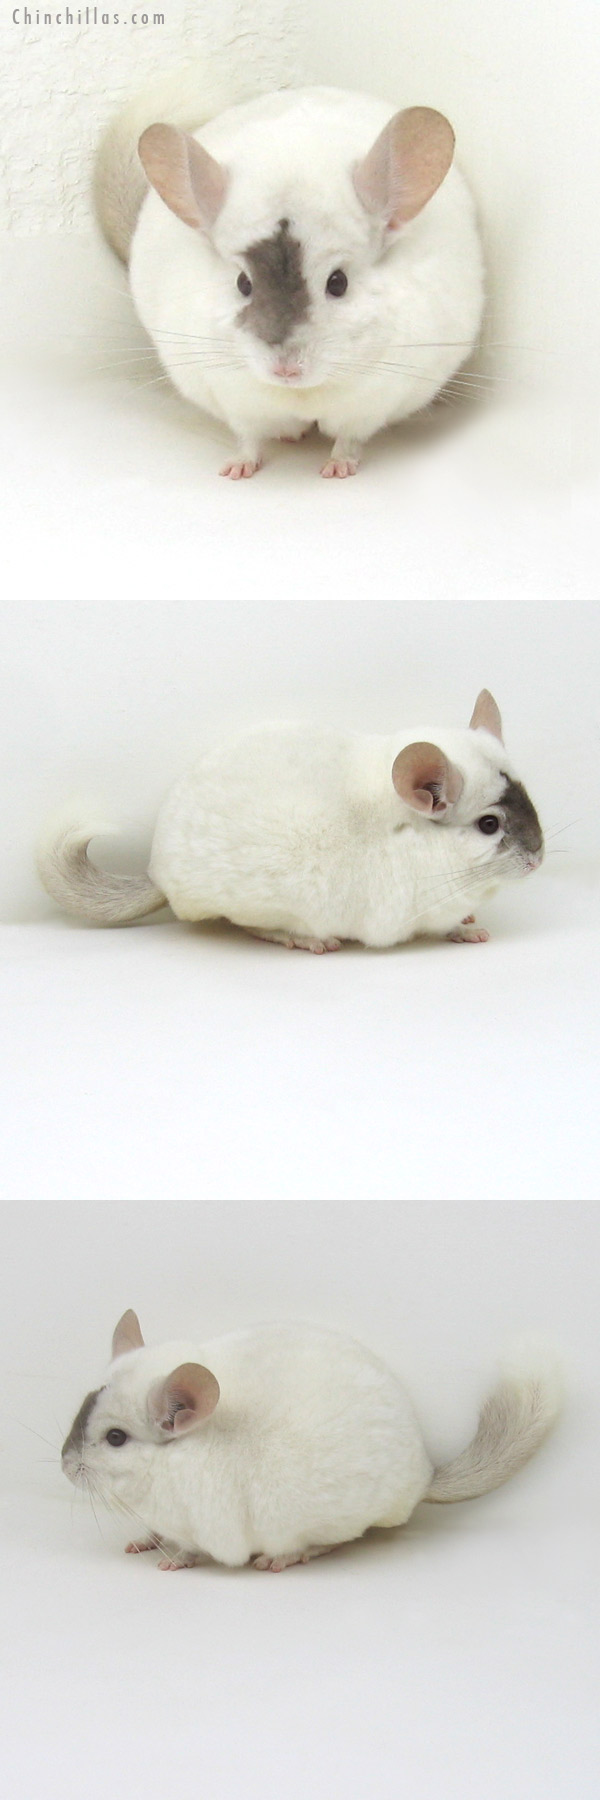 11129 Show Quality Extreme Beige and White Mosaic Male Chinchilla